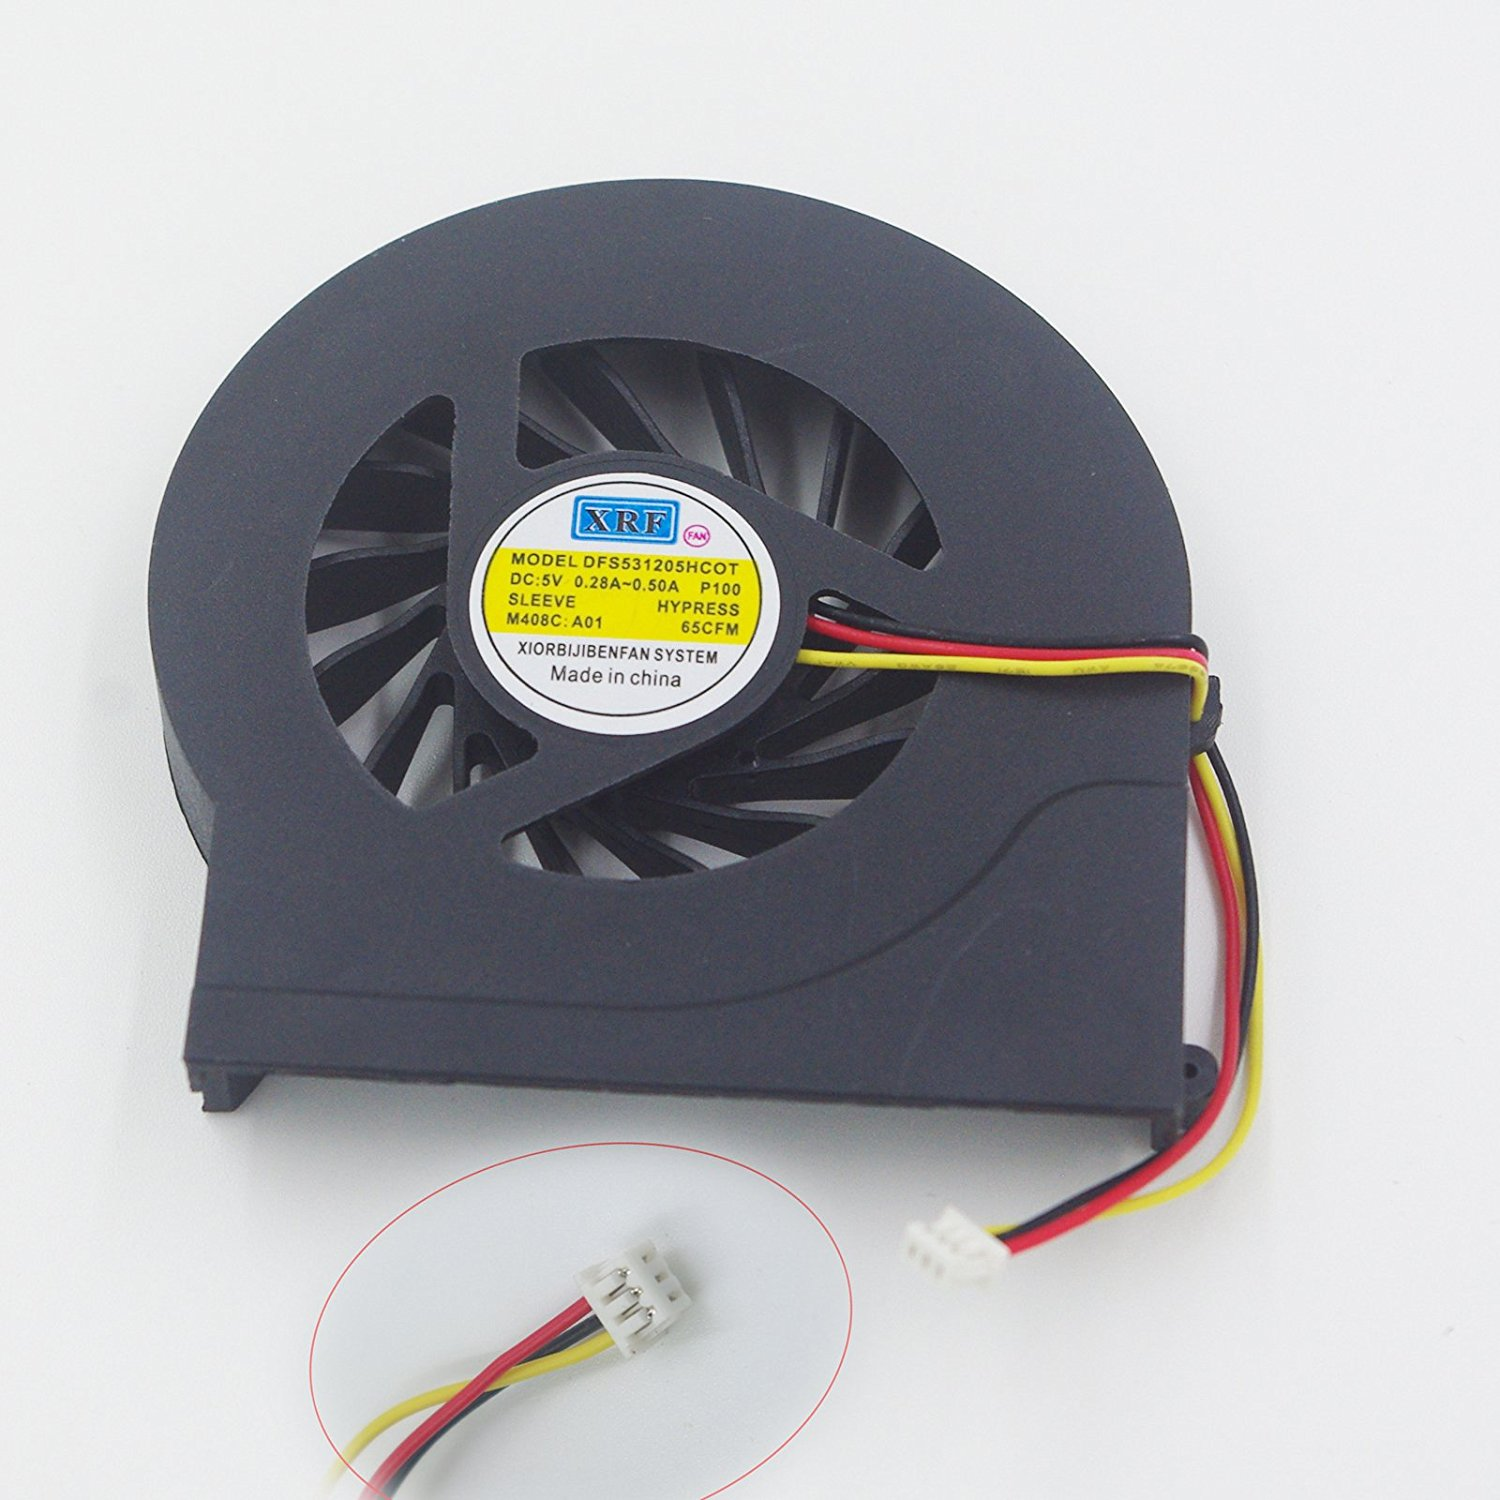 New CPU Cooling Fan for HP Pavilion dv7-4000 dv7-4100 dv7-4200 dv7-4300 dv7t-4100 CTO dv7t- 4200 CTO series laptop